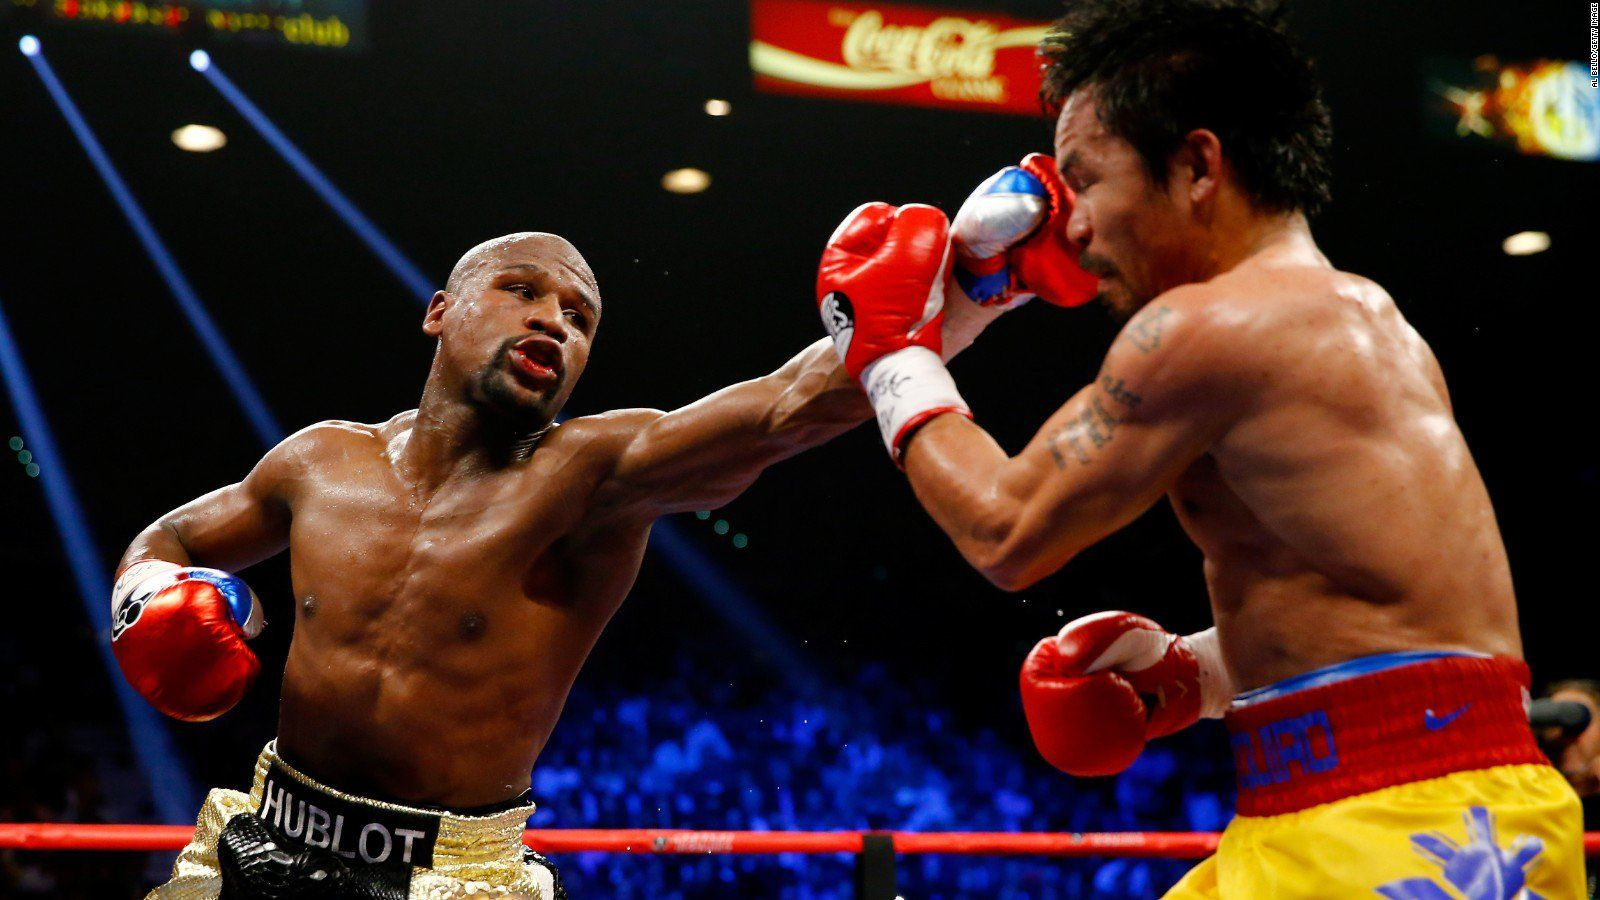 Floyd Mayweather Jr Vs Manny Pacquiao Rematch Confirmed By Maywather Sr Manny Pacquiao Floyd Mayweather Floyd Mayweather Fight